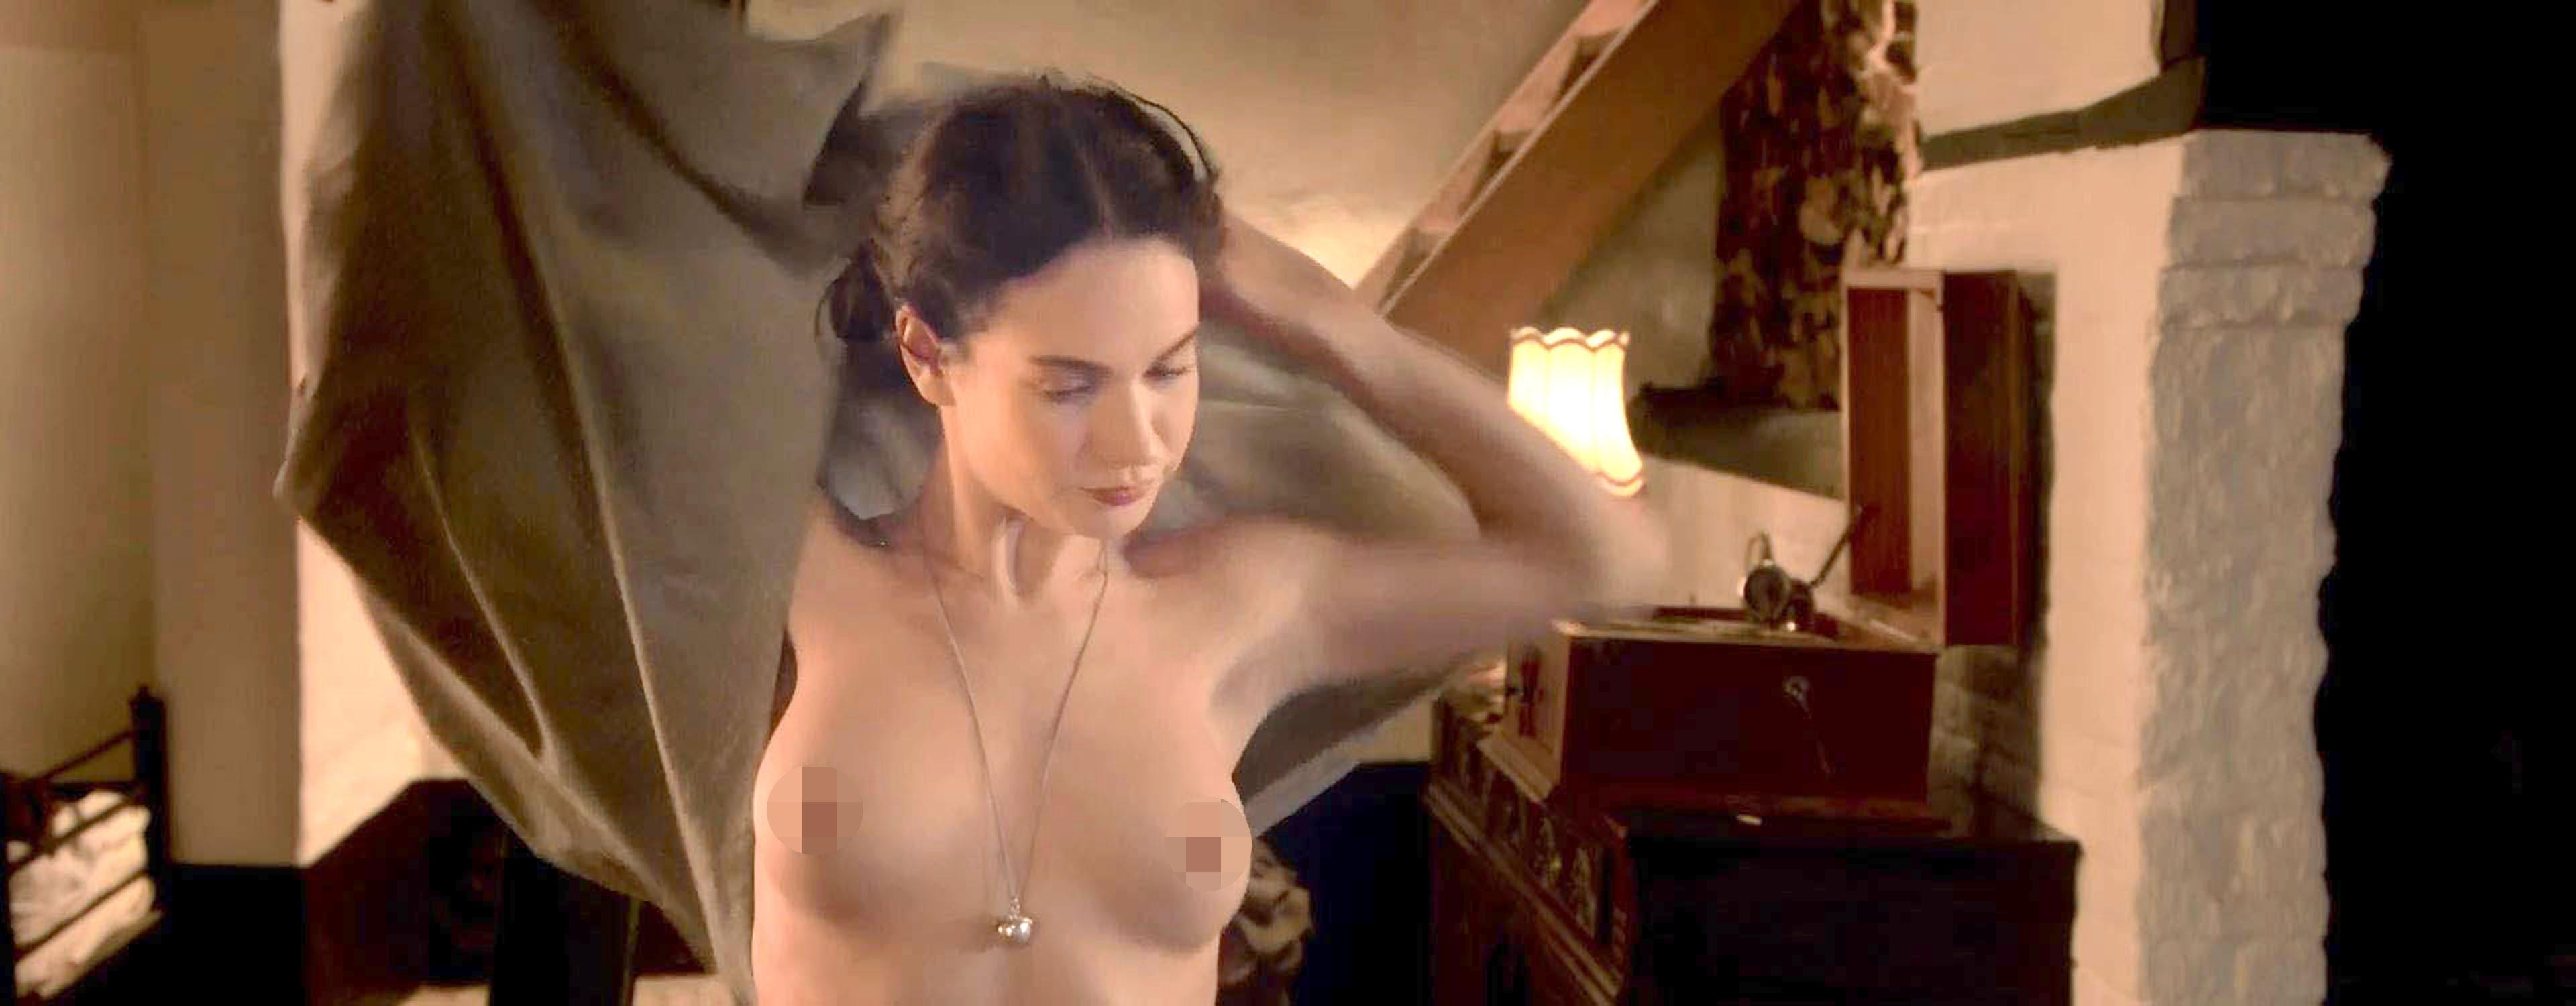 Lilly James Topless photo 11